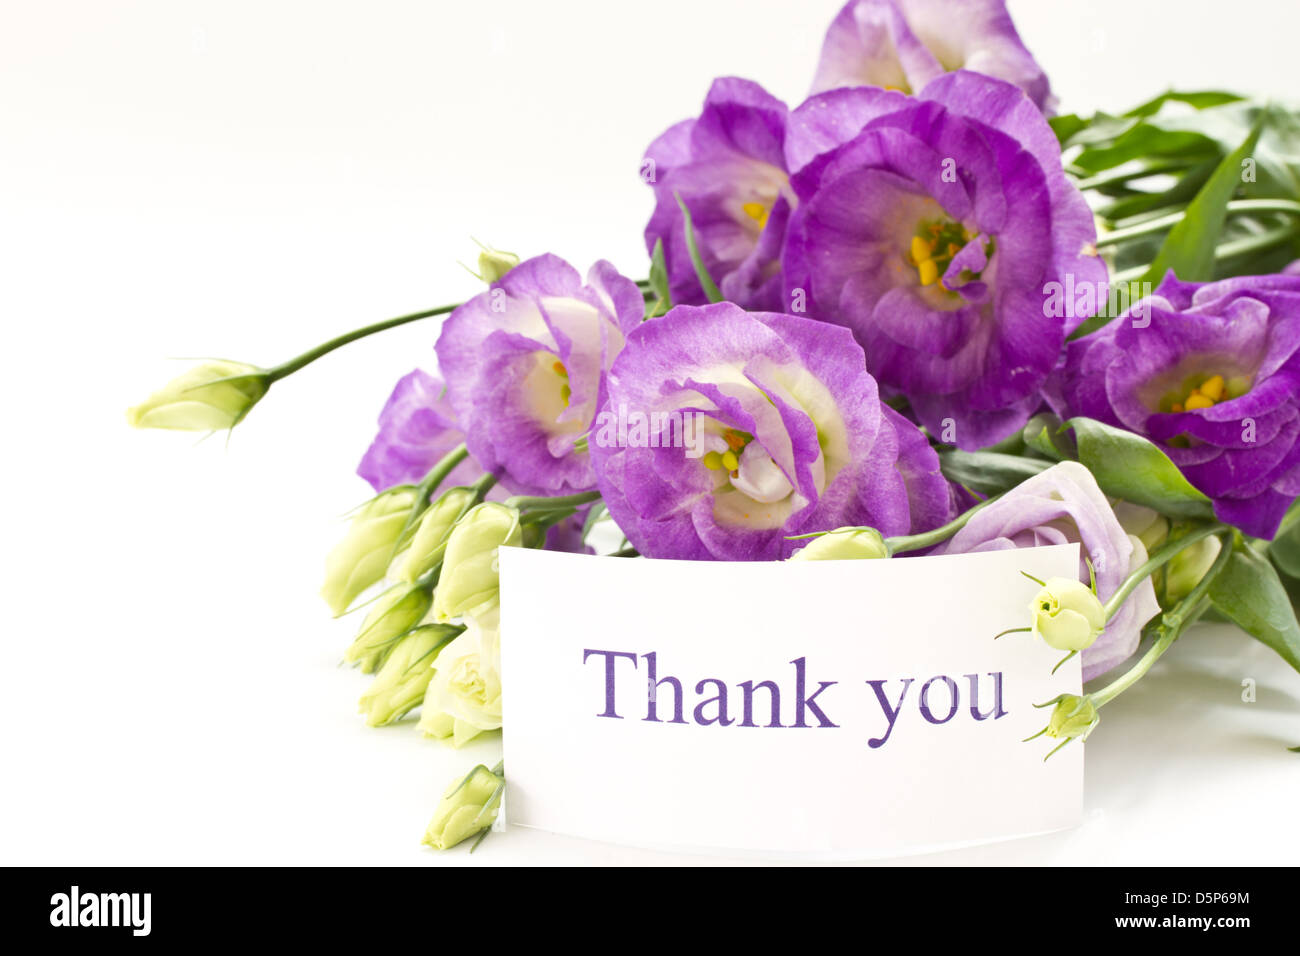 Beautiful bouquet of purple flowers on white lisianthus stock photo beautiful bouquet of purple flowers on white lisianthus thecheapjerseys Choice Image